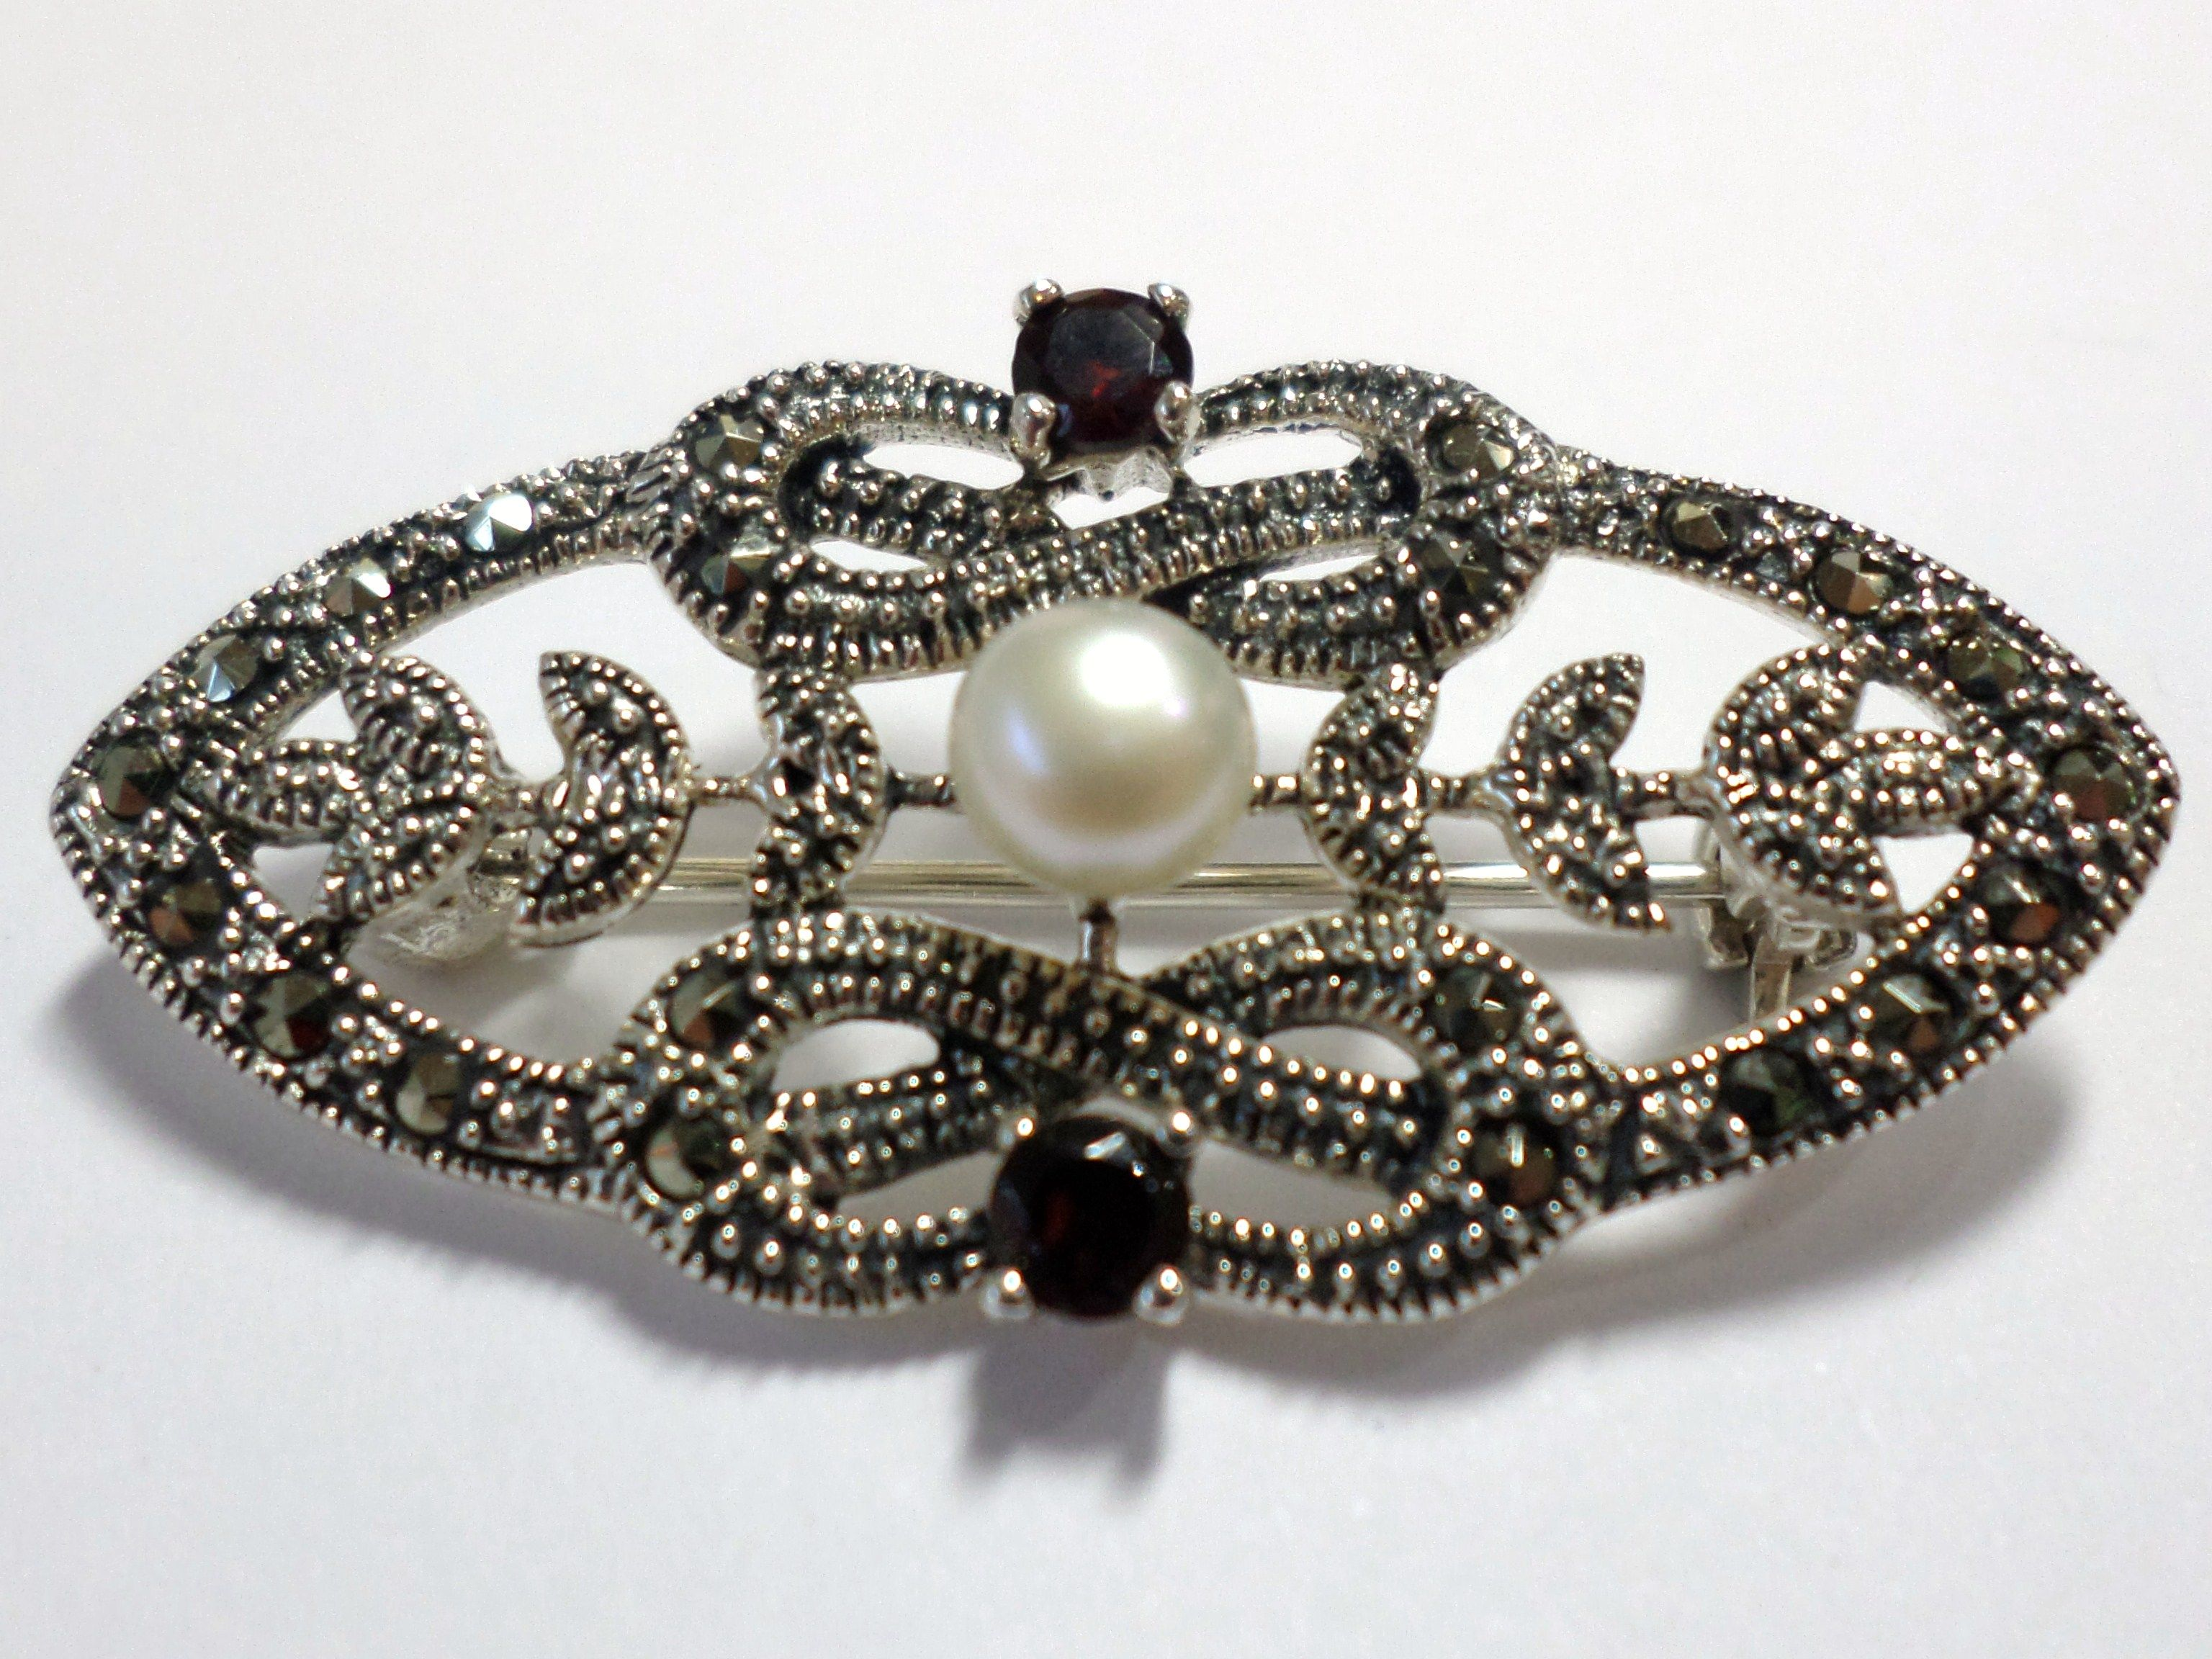 Sterling Silver Brooch Set With Marcasite Garnet And Cultured Freshwater Pearl Vintage Antique Reproduction Jewellery 60 00 Contact Us At Www Facebook Com Ell